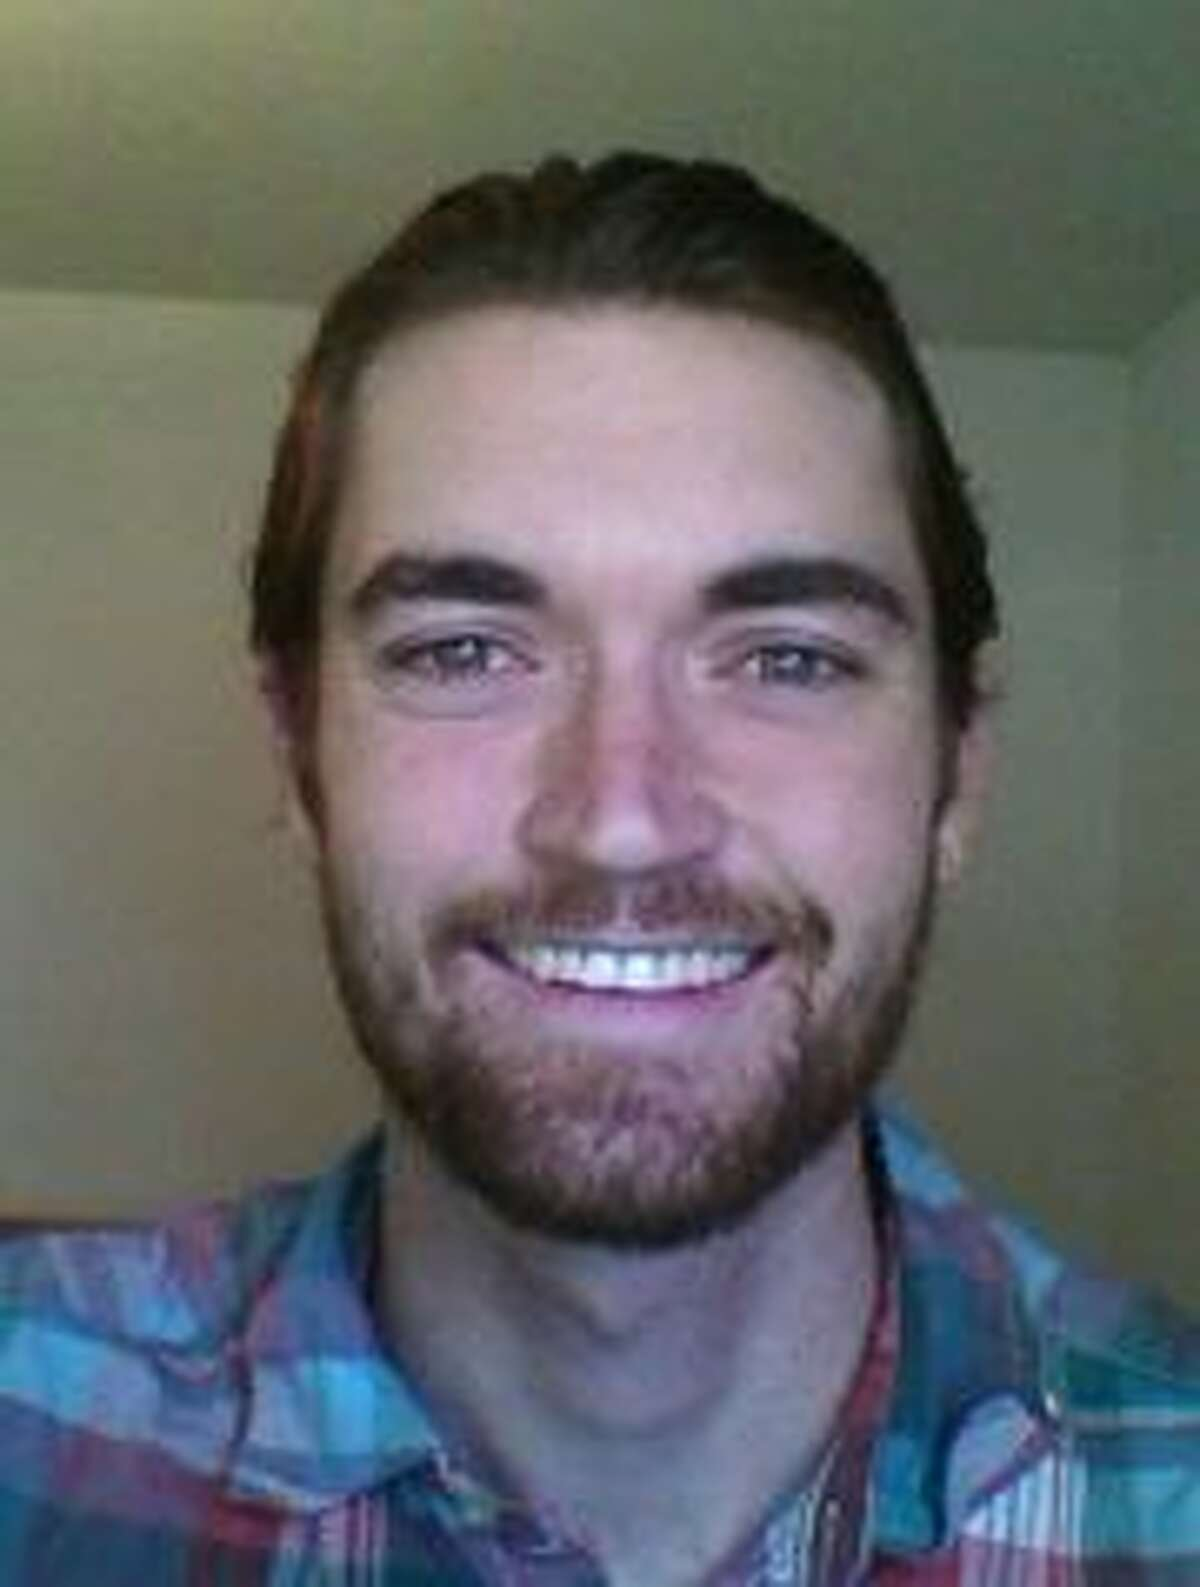 Ross Ulbricht has been found guilty of running Silk Road, an underground website that authorities contend was a black-market bazaar for cocaine, heroin and other drugs. He was formerly a student at the University of Texas at Dallas.(Photo: U.S. Attorney's office for the Southern District of New York)